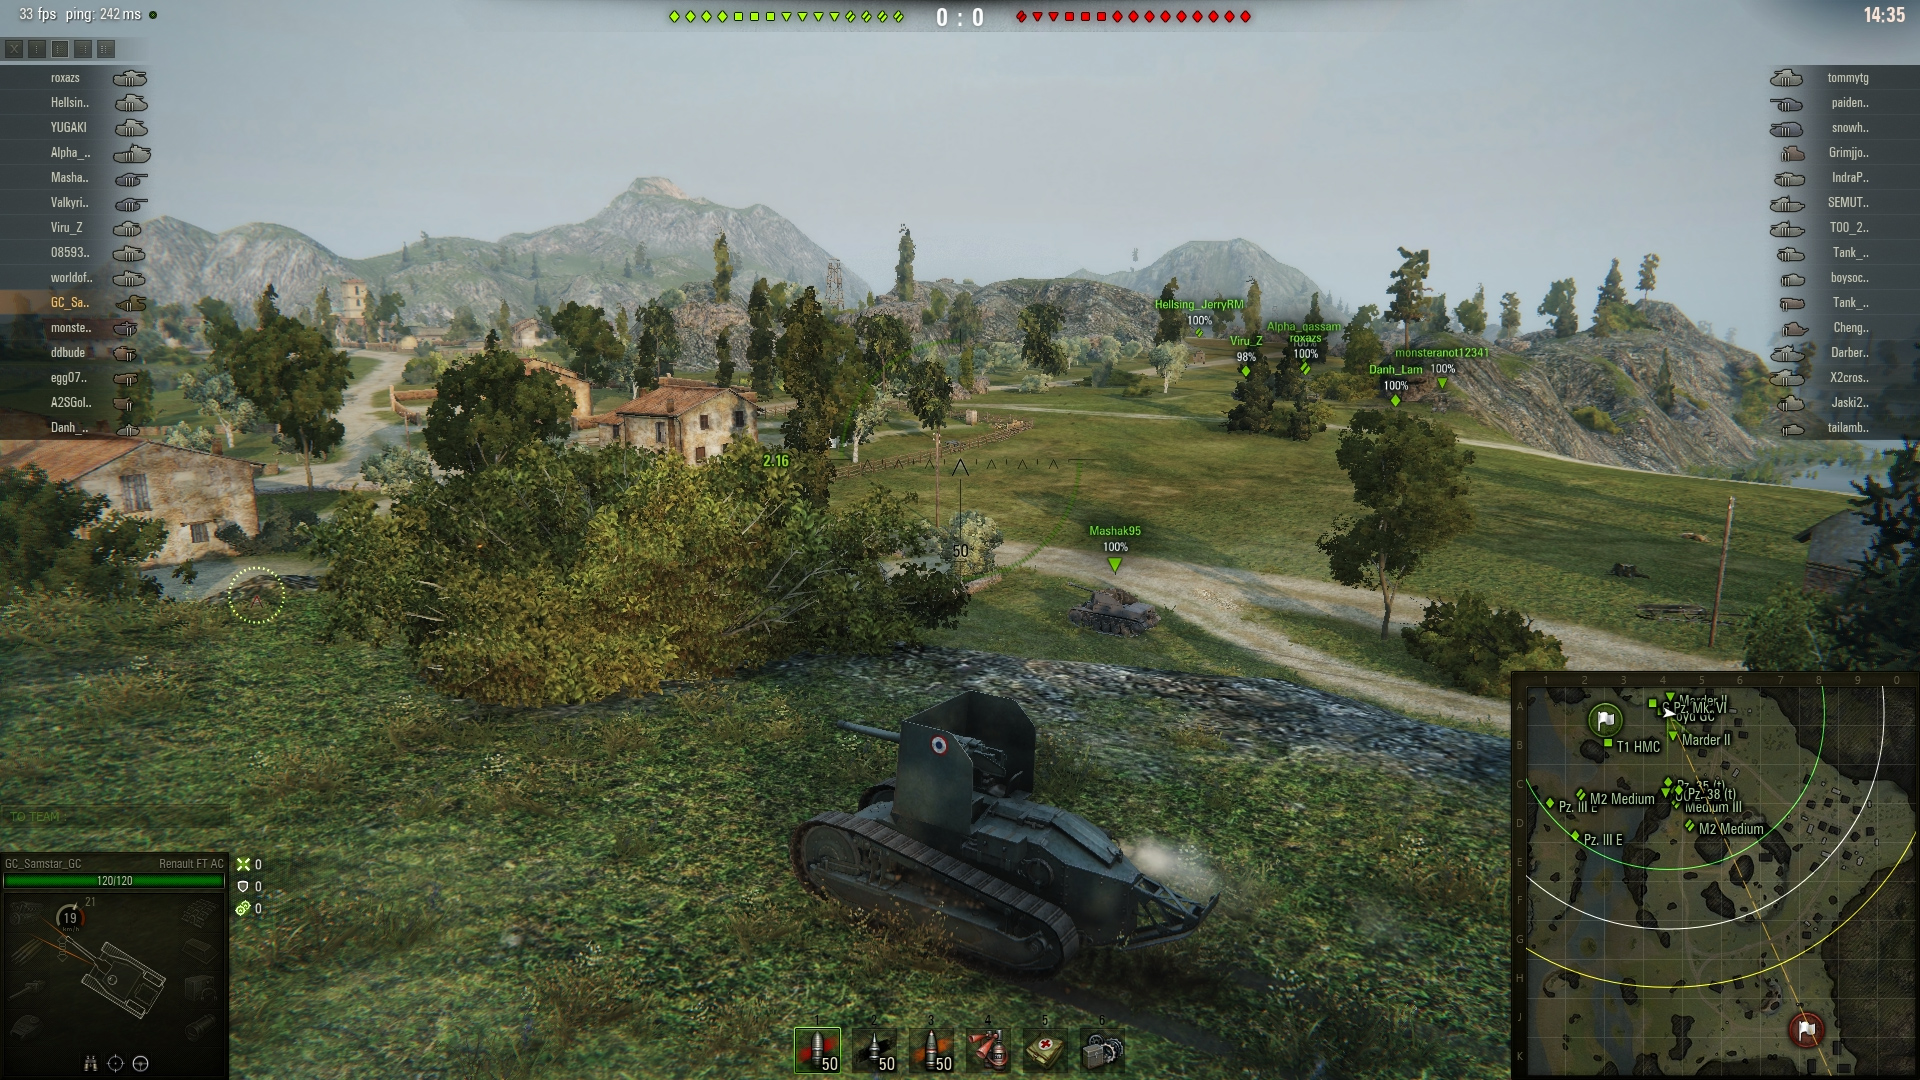 With an impressive gun depression, the Renault FT AC is better used as a hilltop sniper.